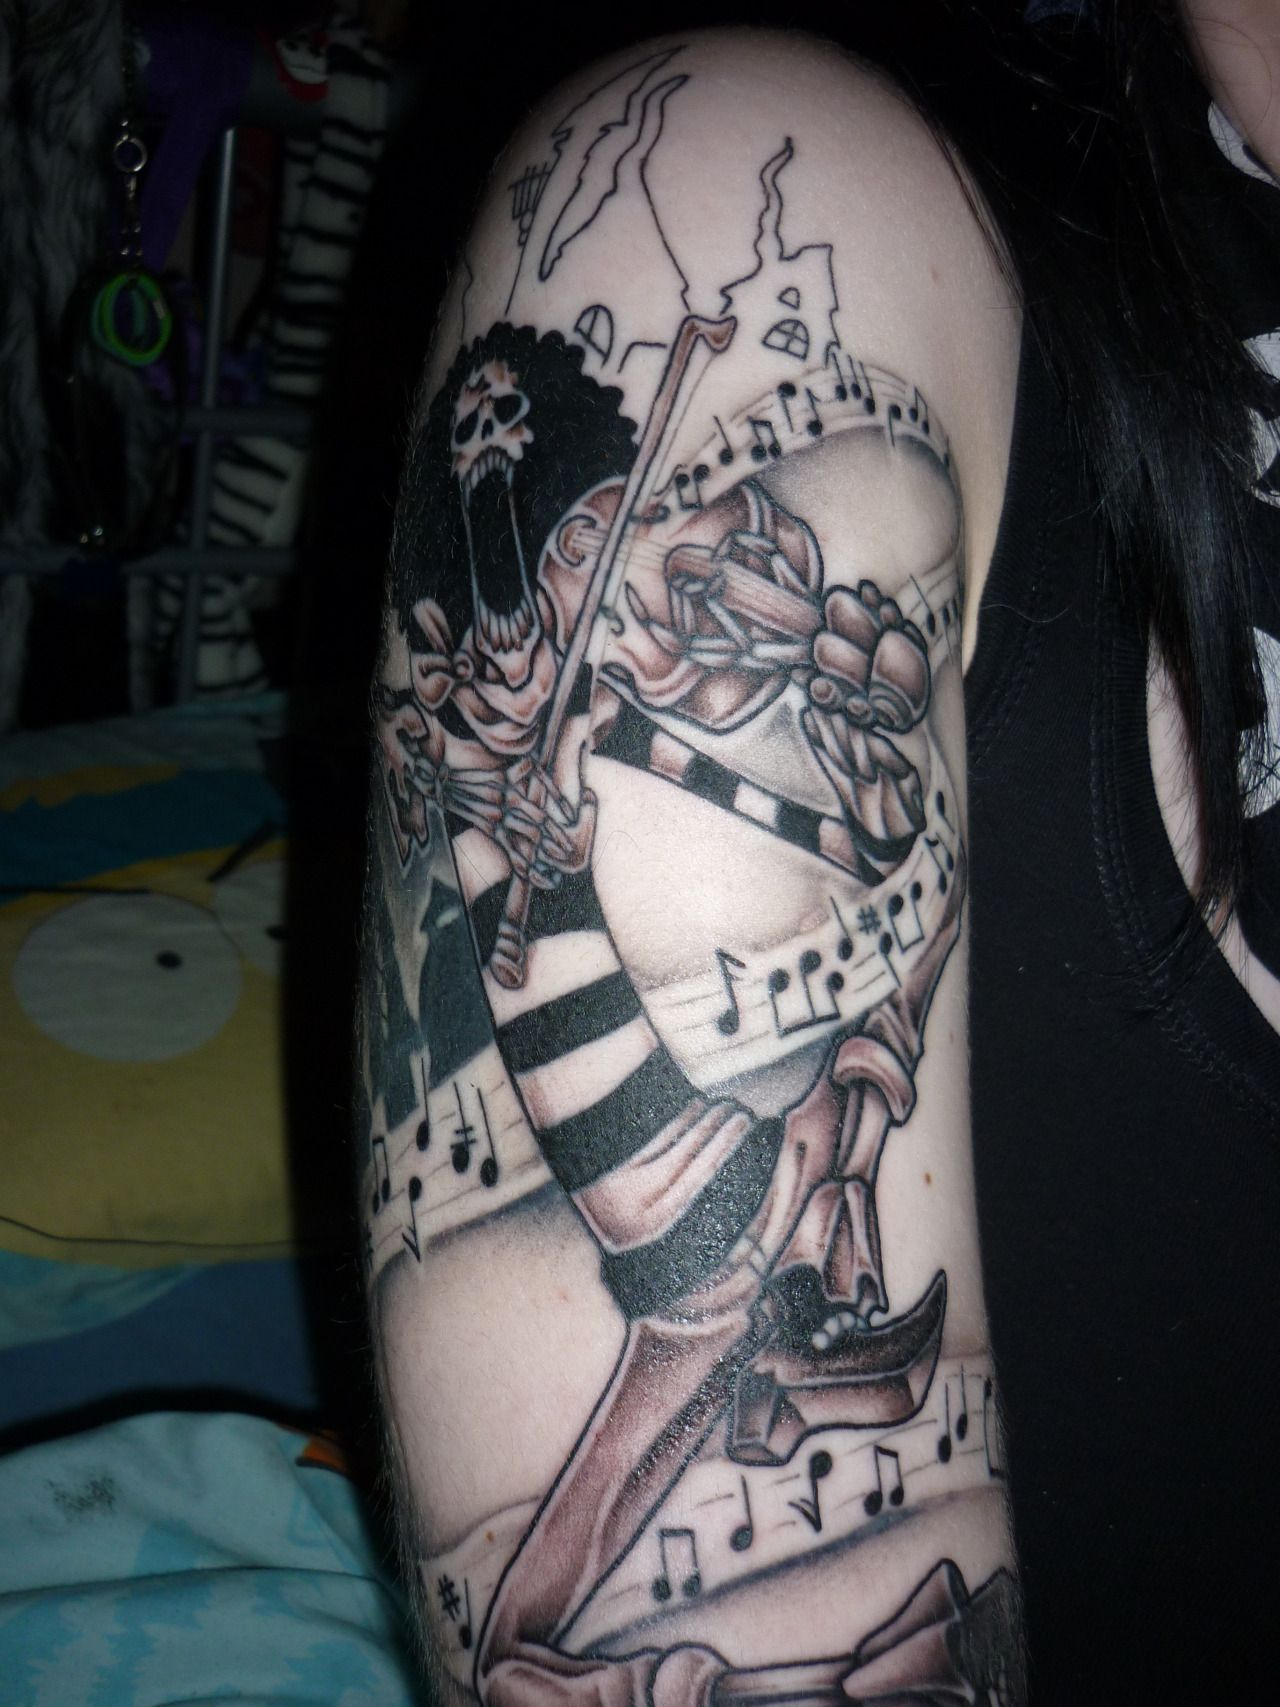 Brook from One Piece tattoo | Tattoos | Pinterest | One ...